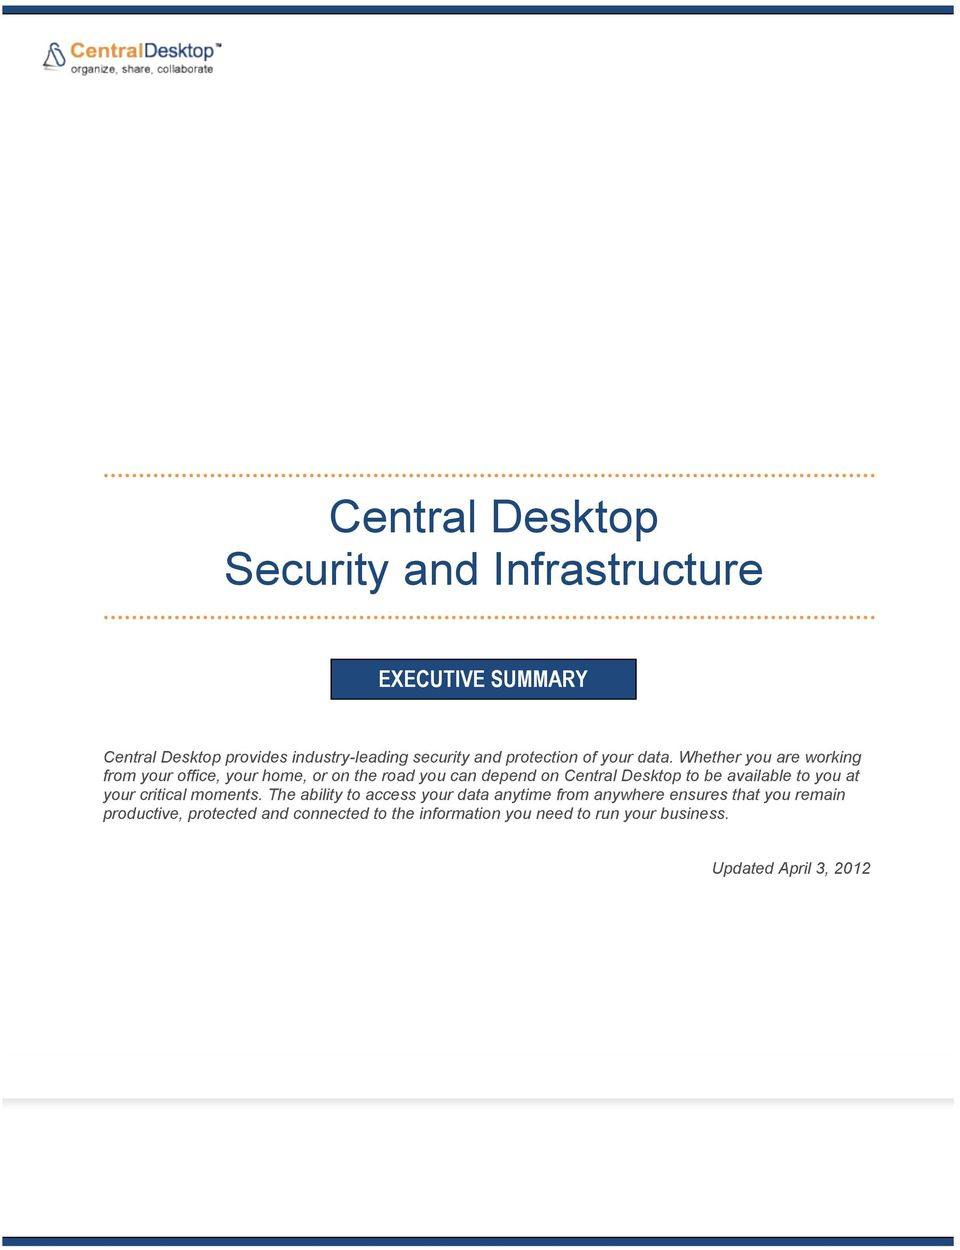 Whether you are working from your office, your home, or on the road you can depend on Central Desktop to be available